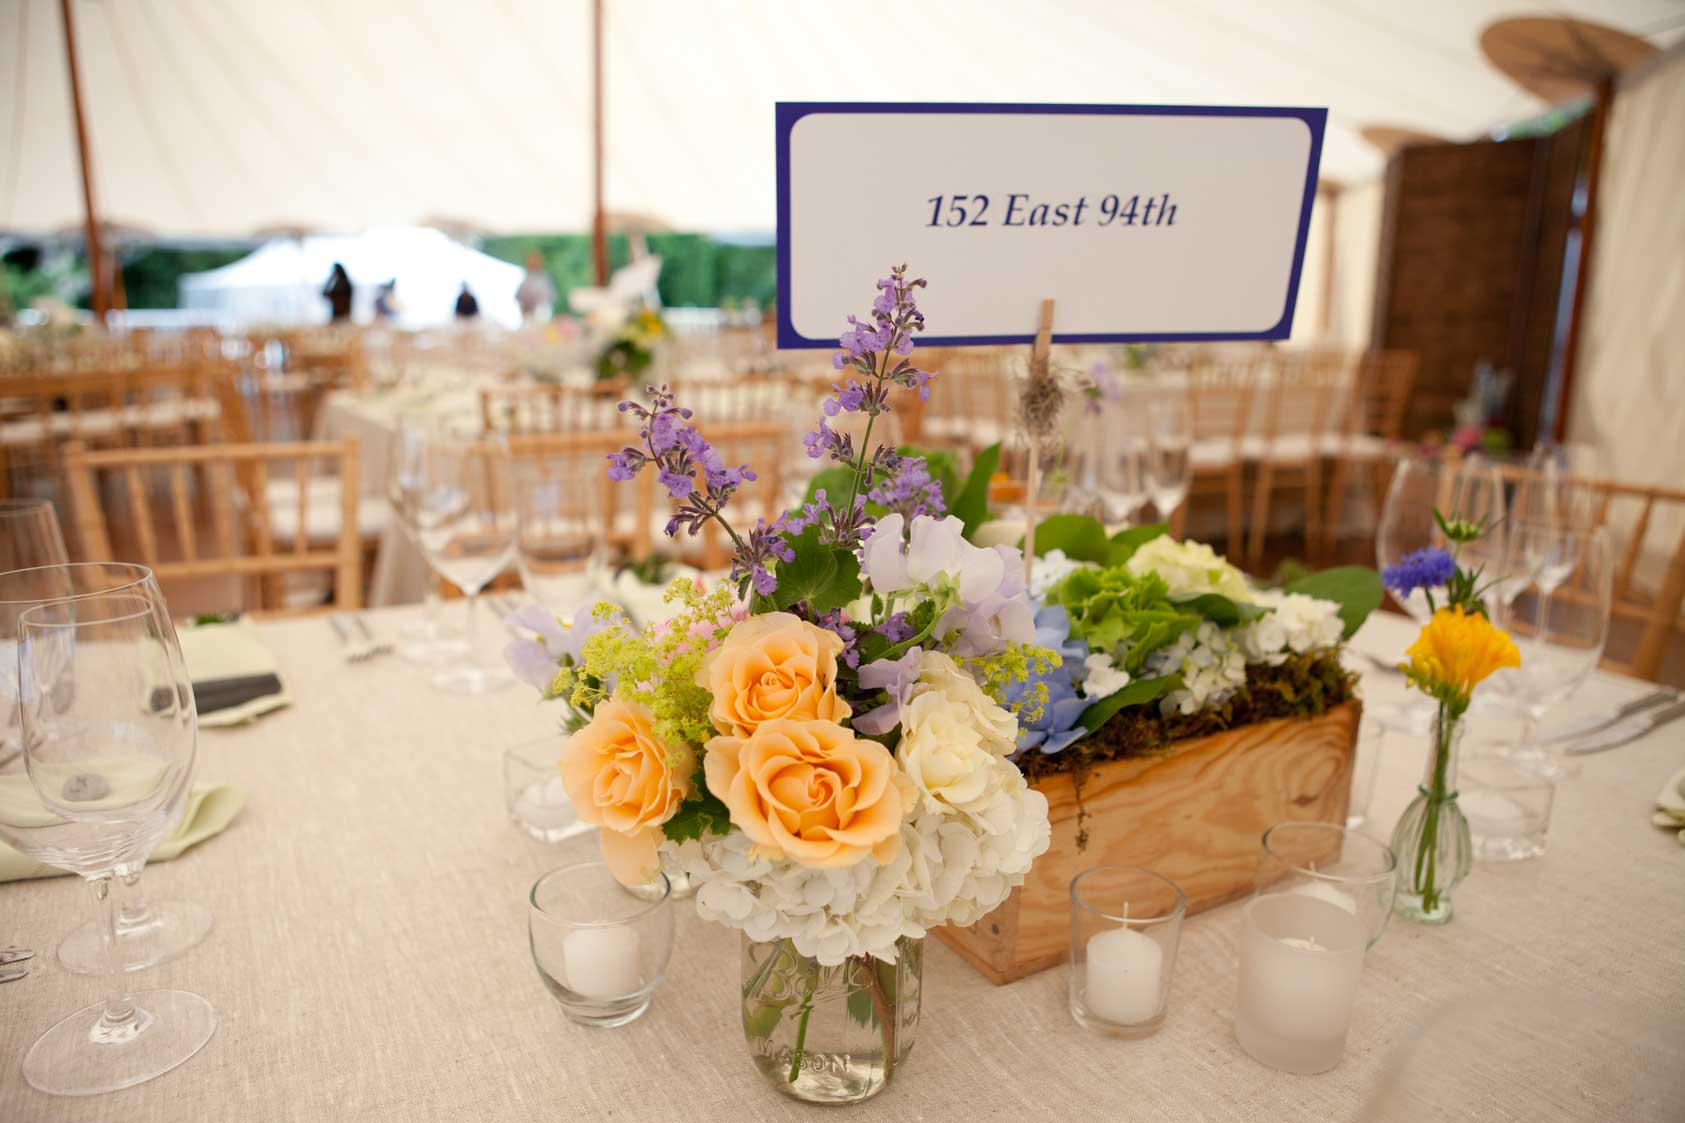 Roses and Maine wildflowers create simple, elegant place settings at this coastal Maine wedding. www.churchillevents.com